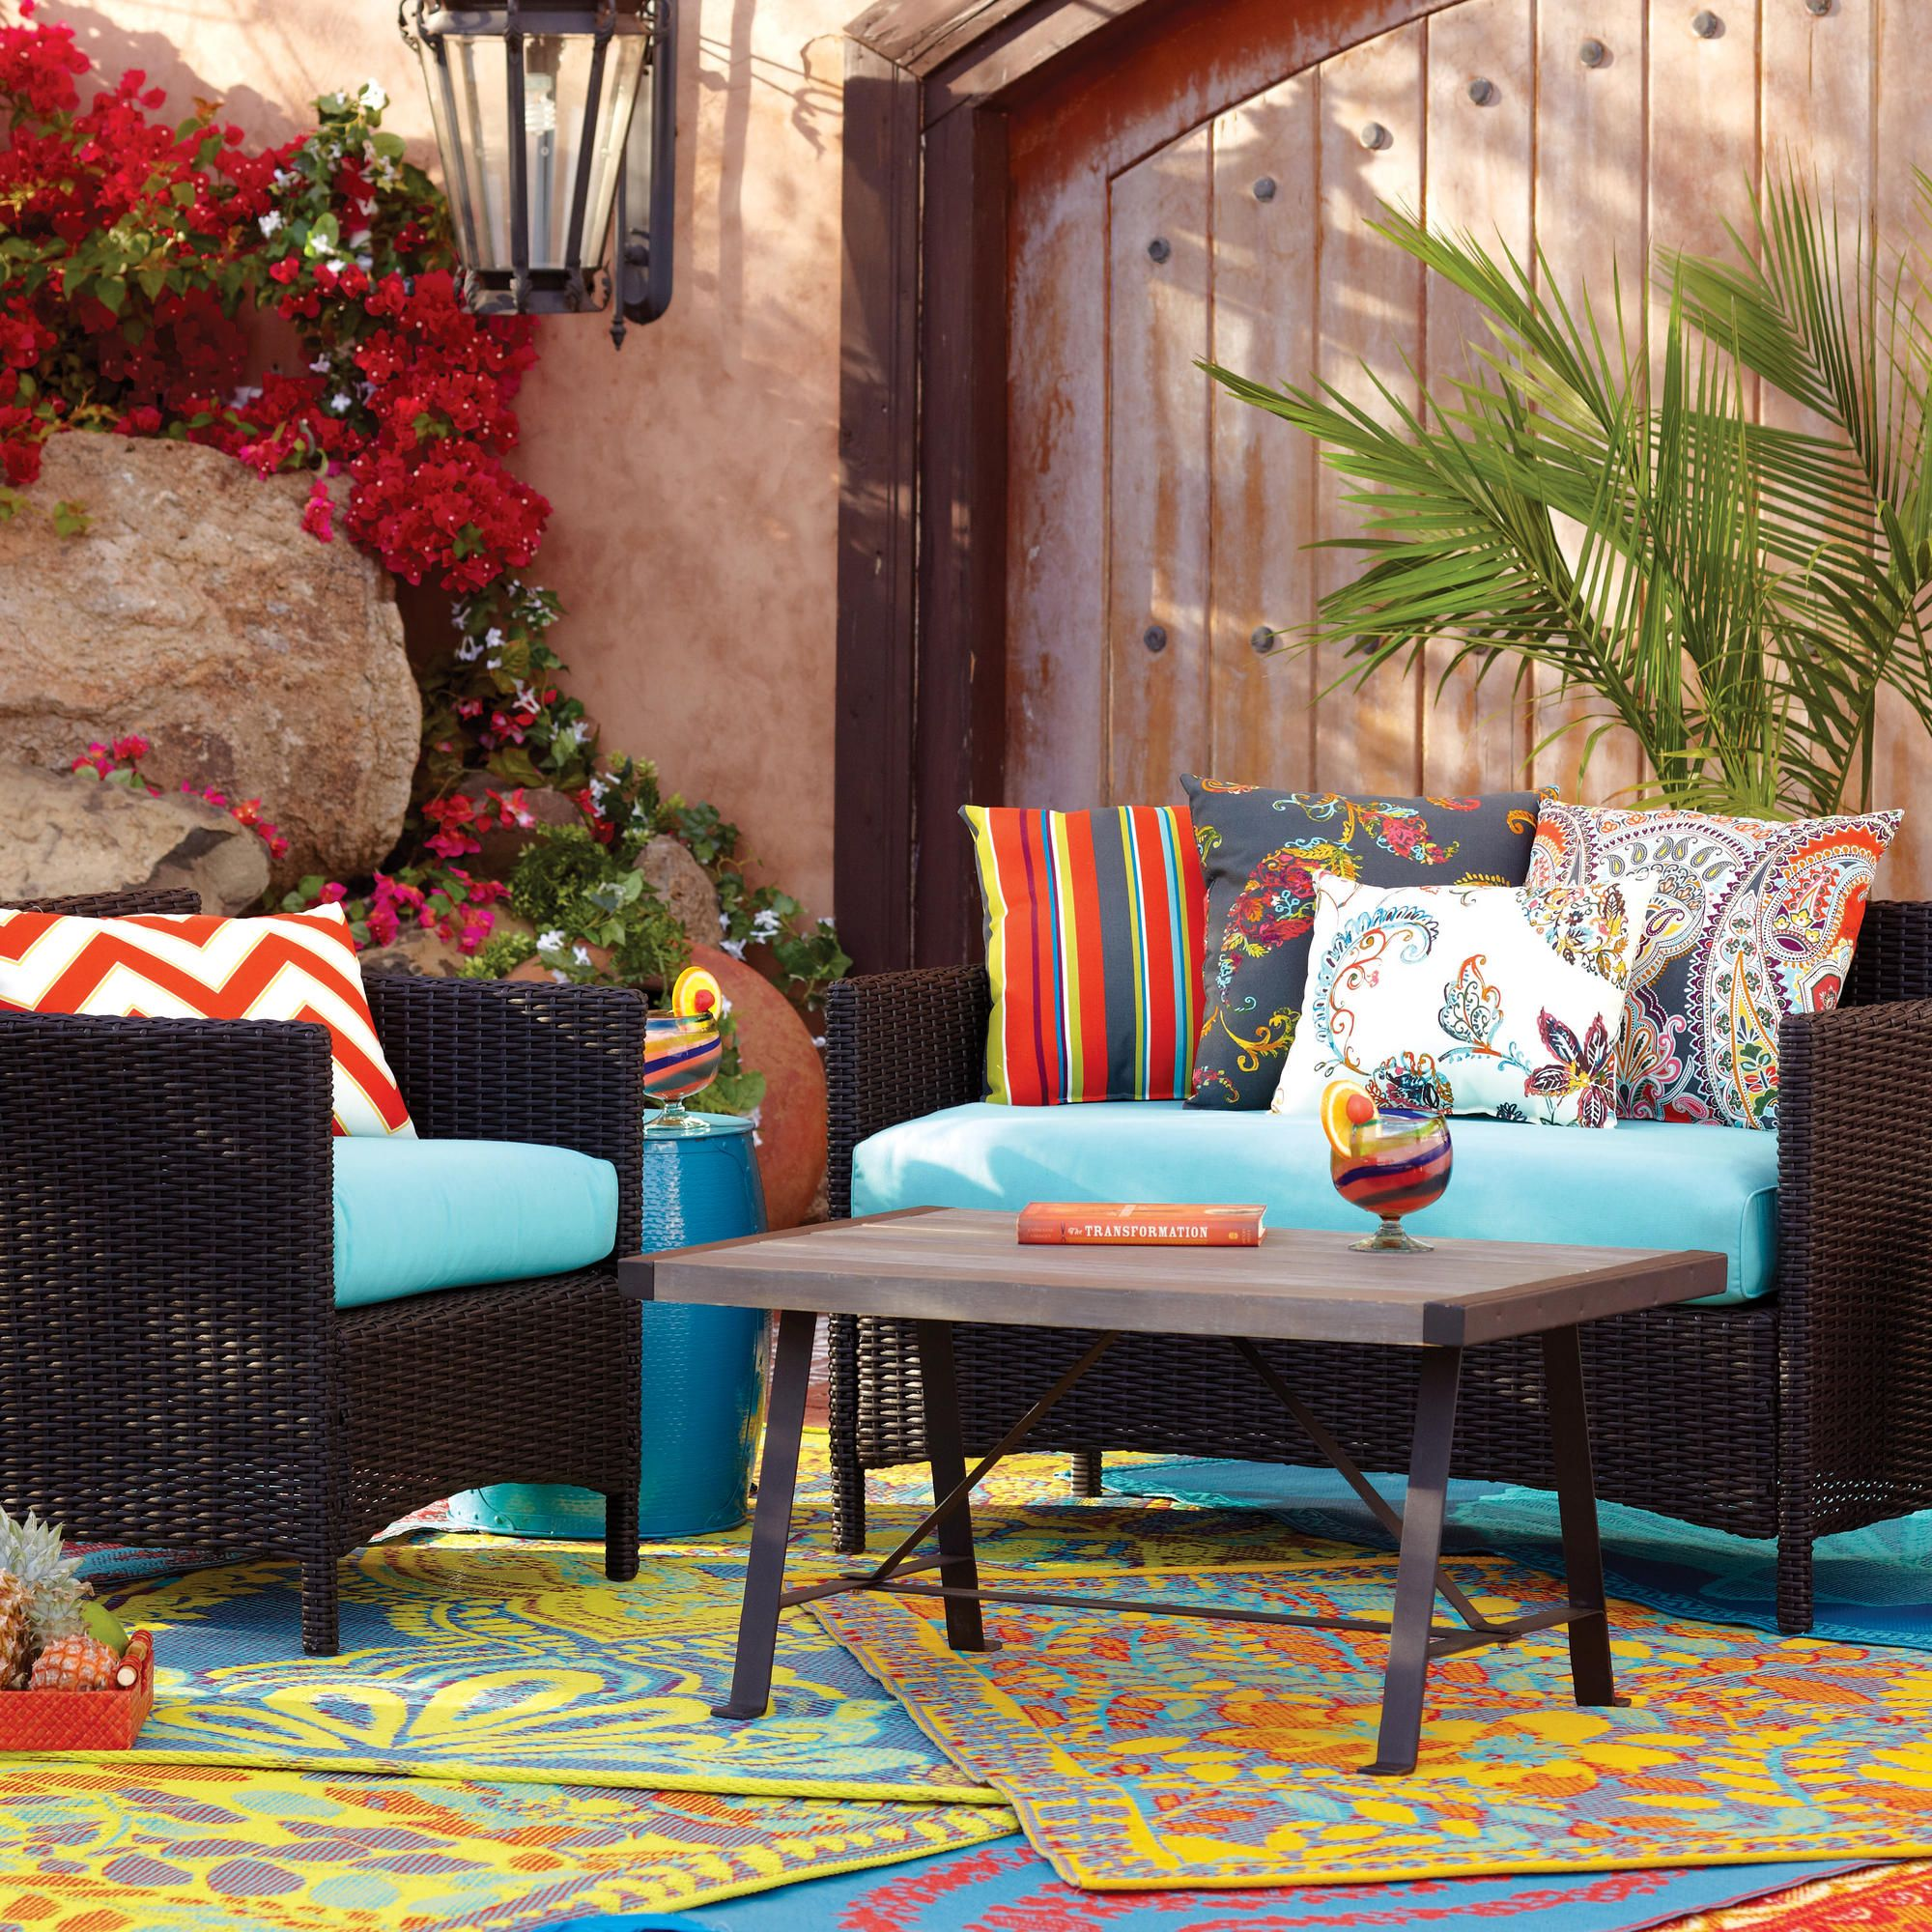 High Quality All Weather Wicker Furniture (Outdoor Furniture Or Patio Furniture) At Cost  Plus World Market Outdoor Entertaining Decor